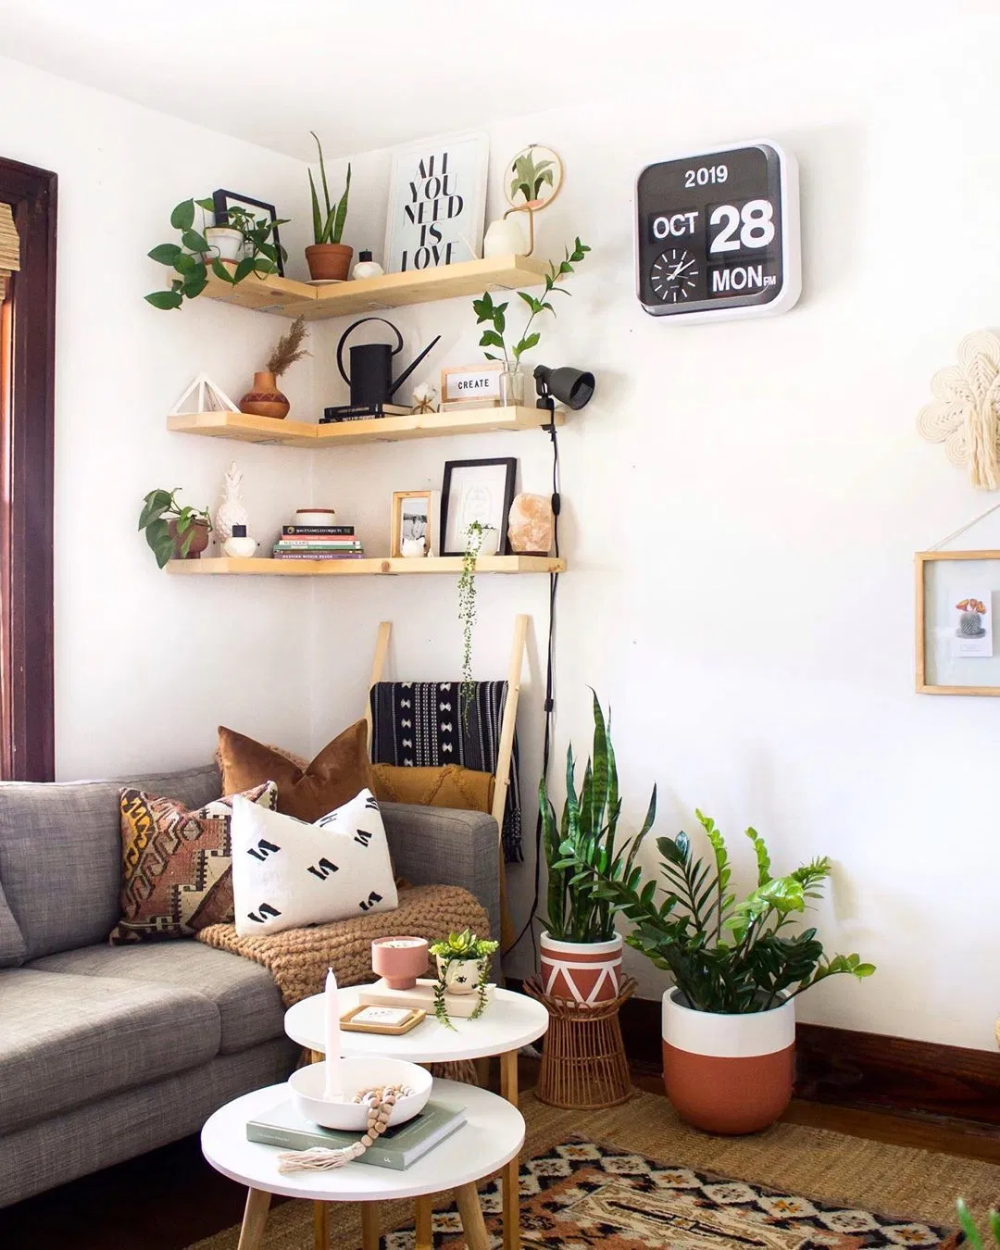 Kids Room Designs For Small Spaces: 17 Tips & Tricks For Small Space Living In 2020